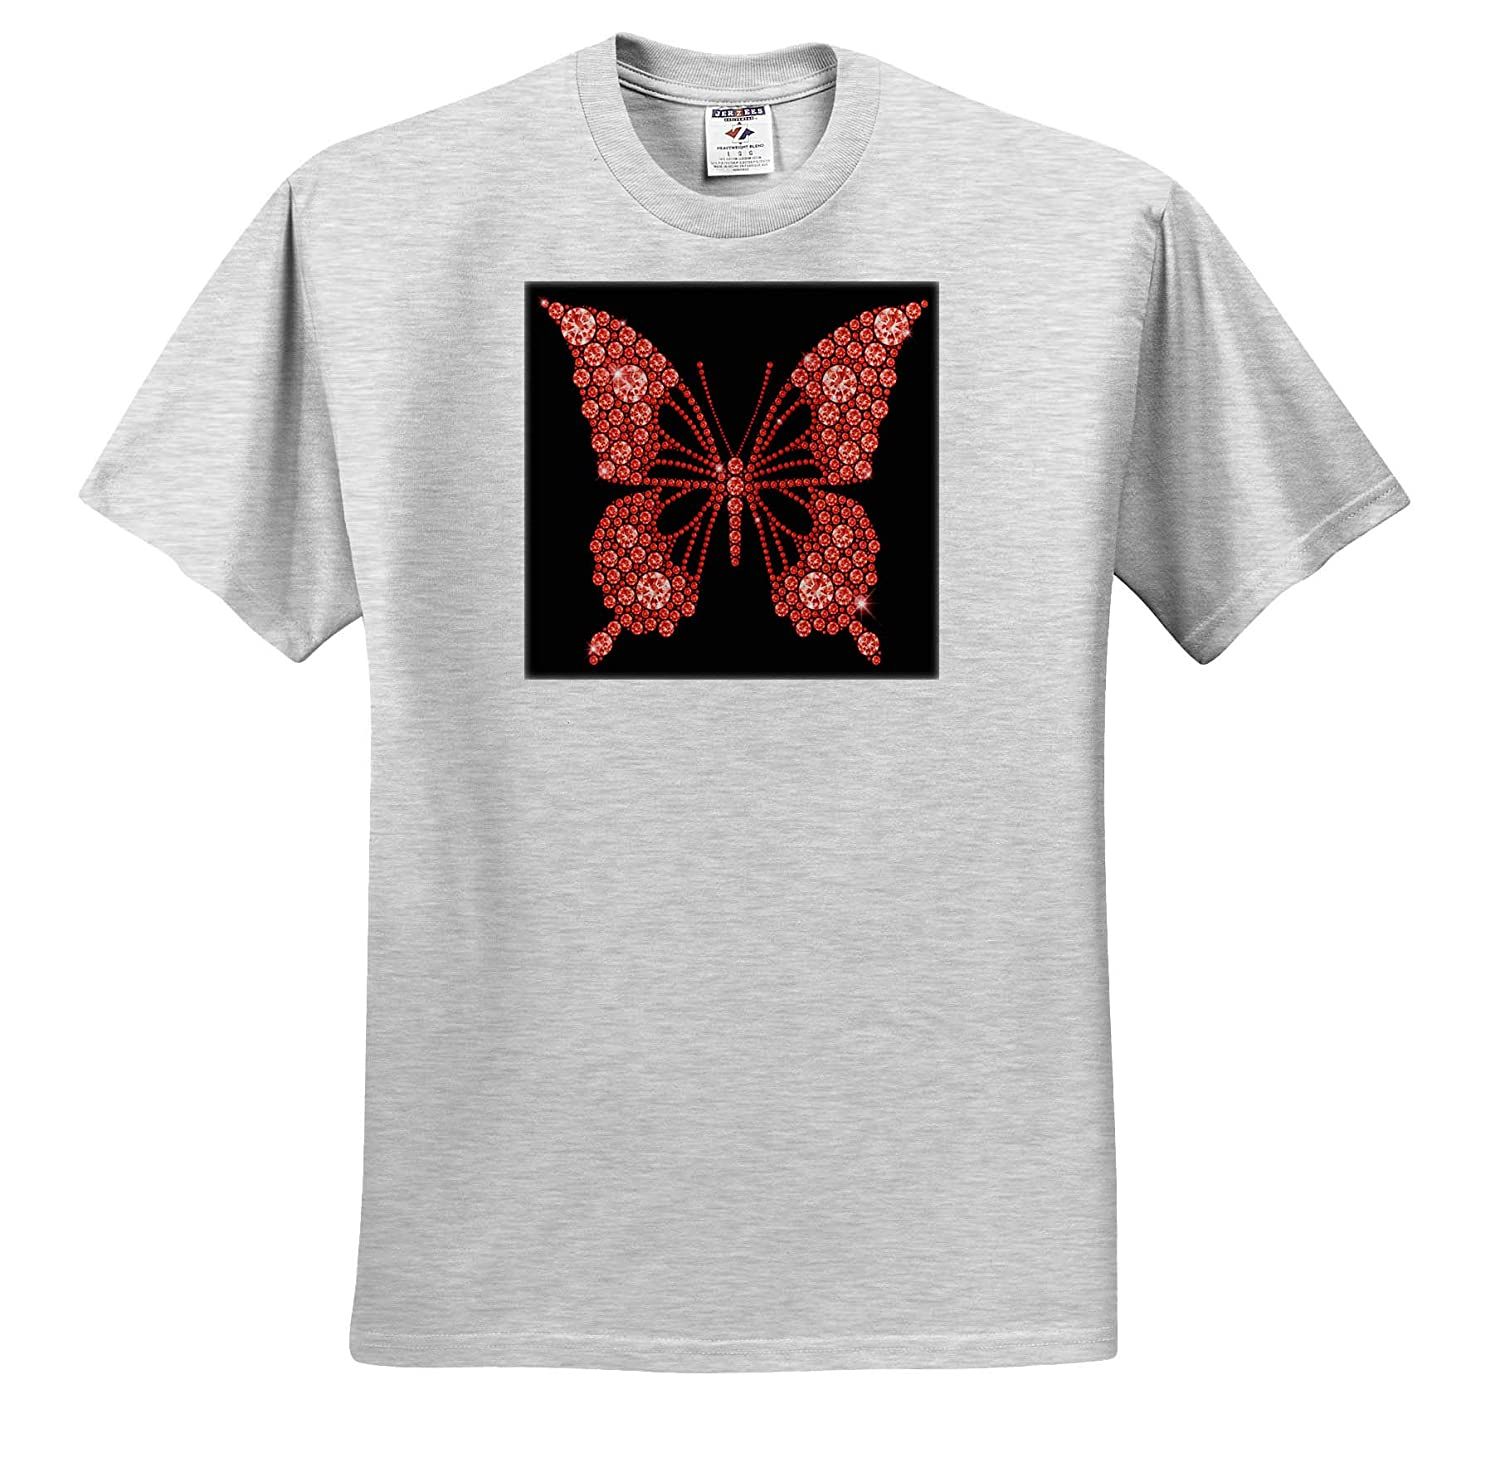 Glam Image of Ruby Jeweled Butterfly Illustration ts/_316266 3dRose Anne Marie Baugh Design Adult T-Shirt XL